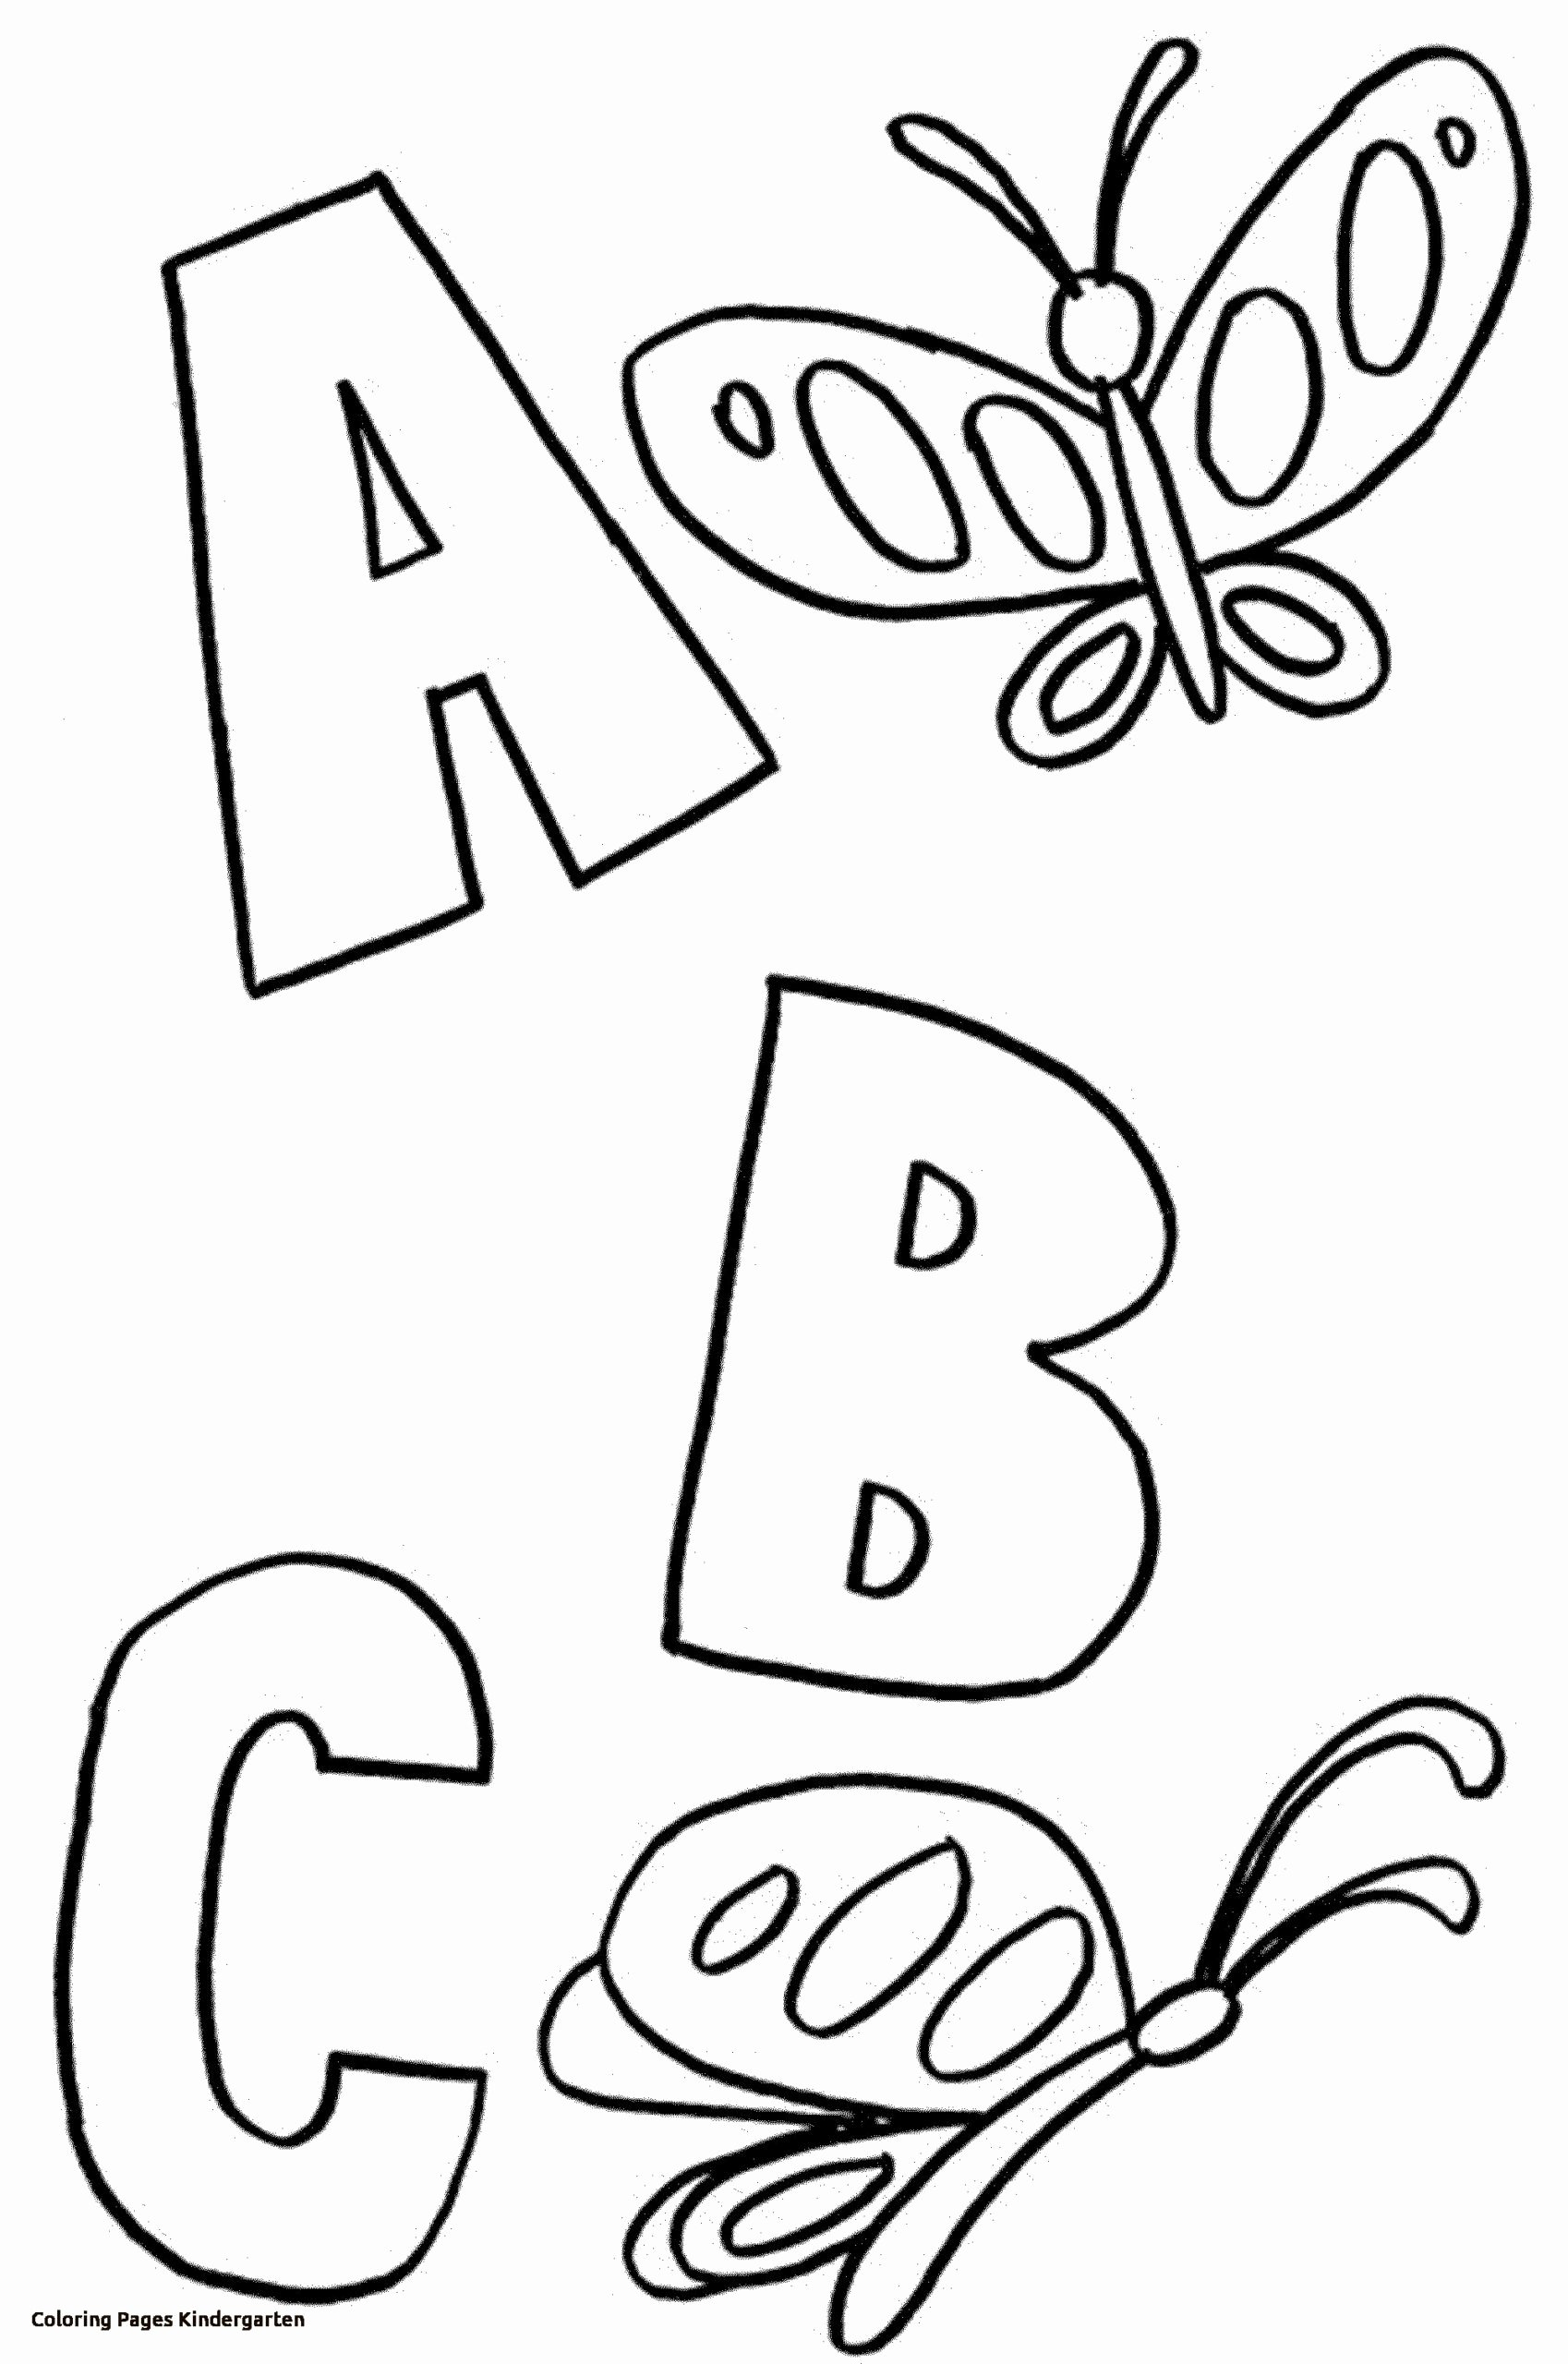 Free Coloring Worksheets for Preschoolers Ideas Coloring Book Excelent Free Coloring Printables for